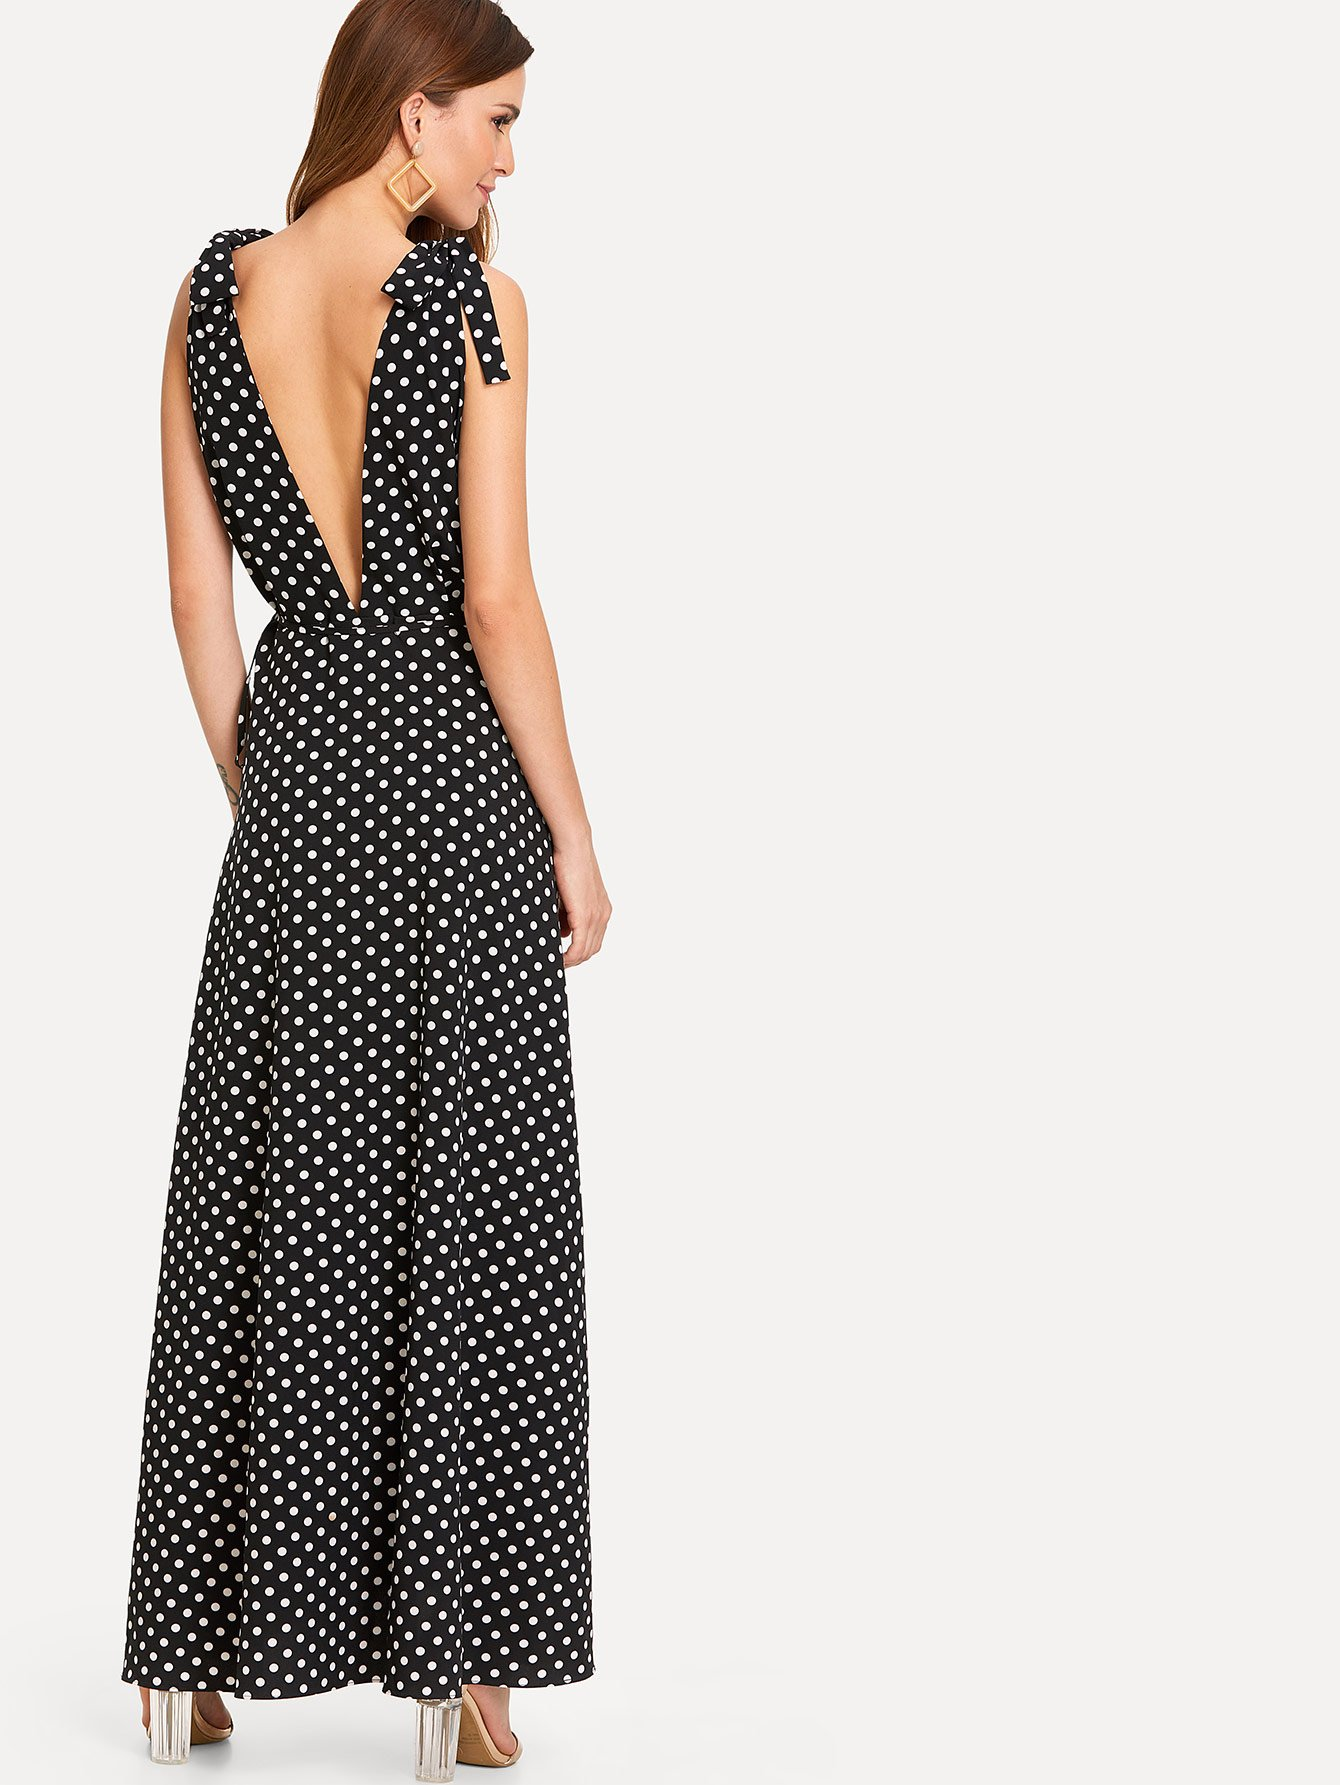 Tie Shoulder Polka Dot Surplice Wrap Dress flounce one shoulder polka dot dress